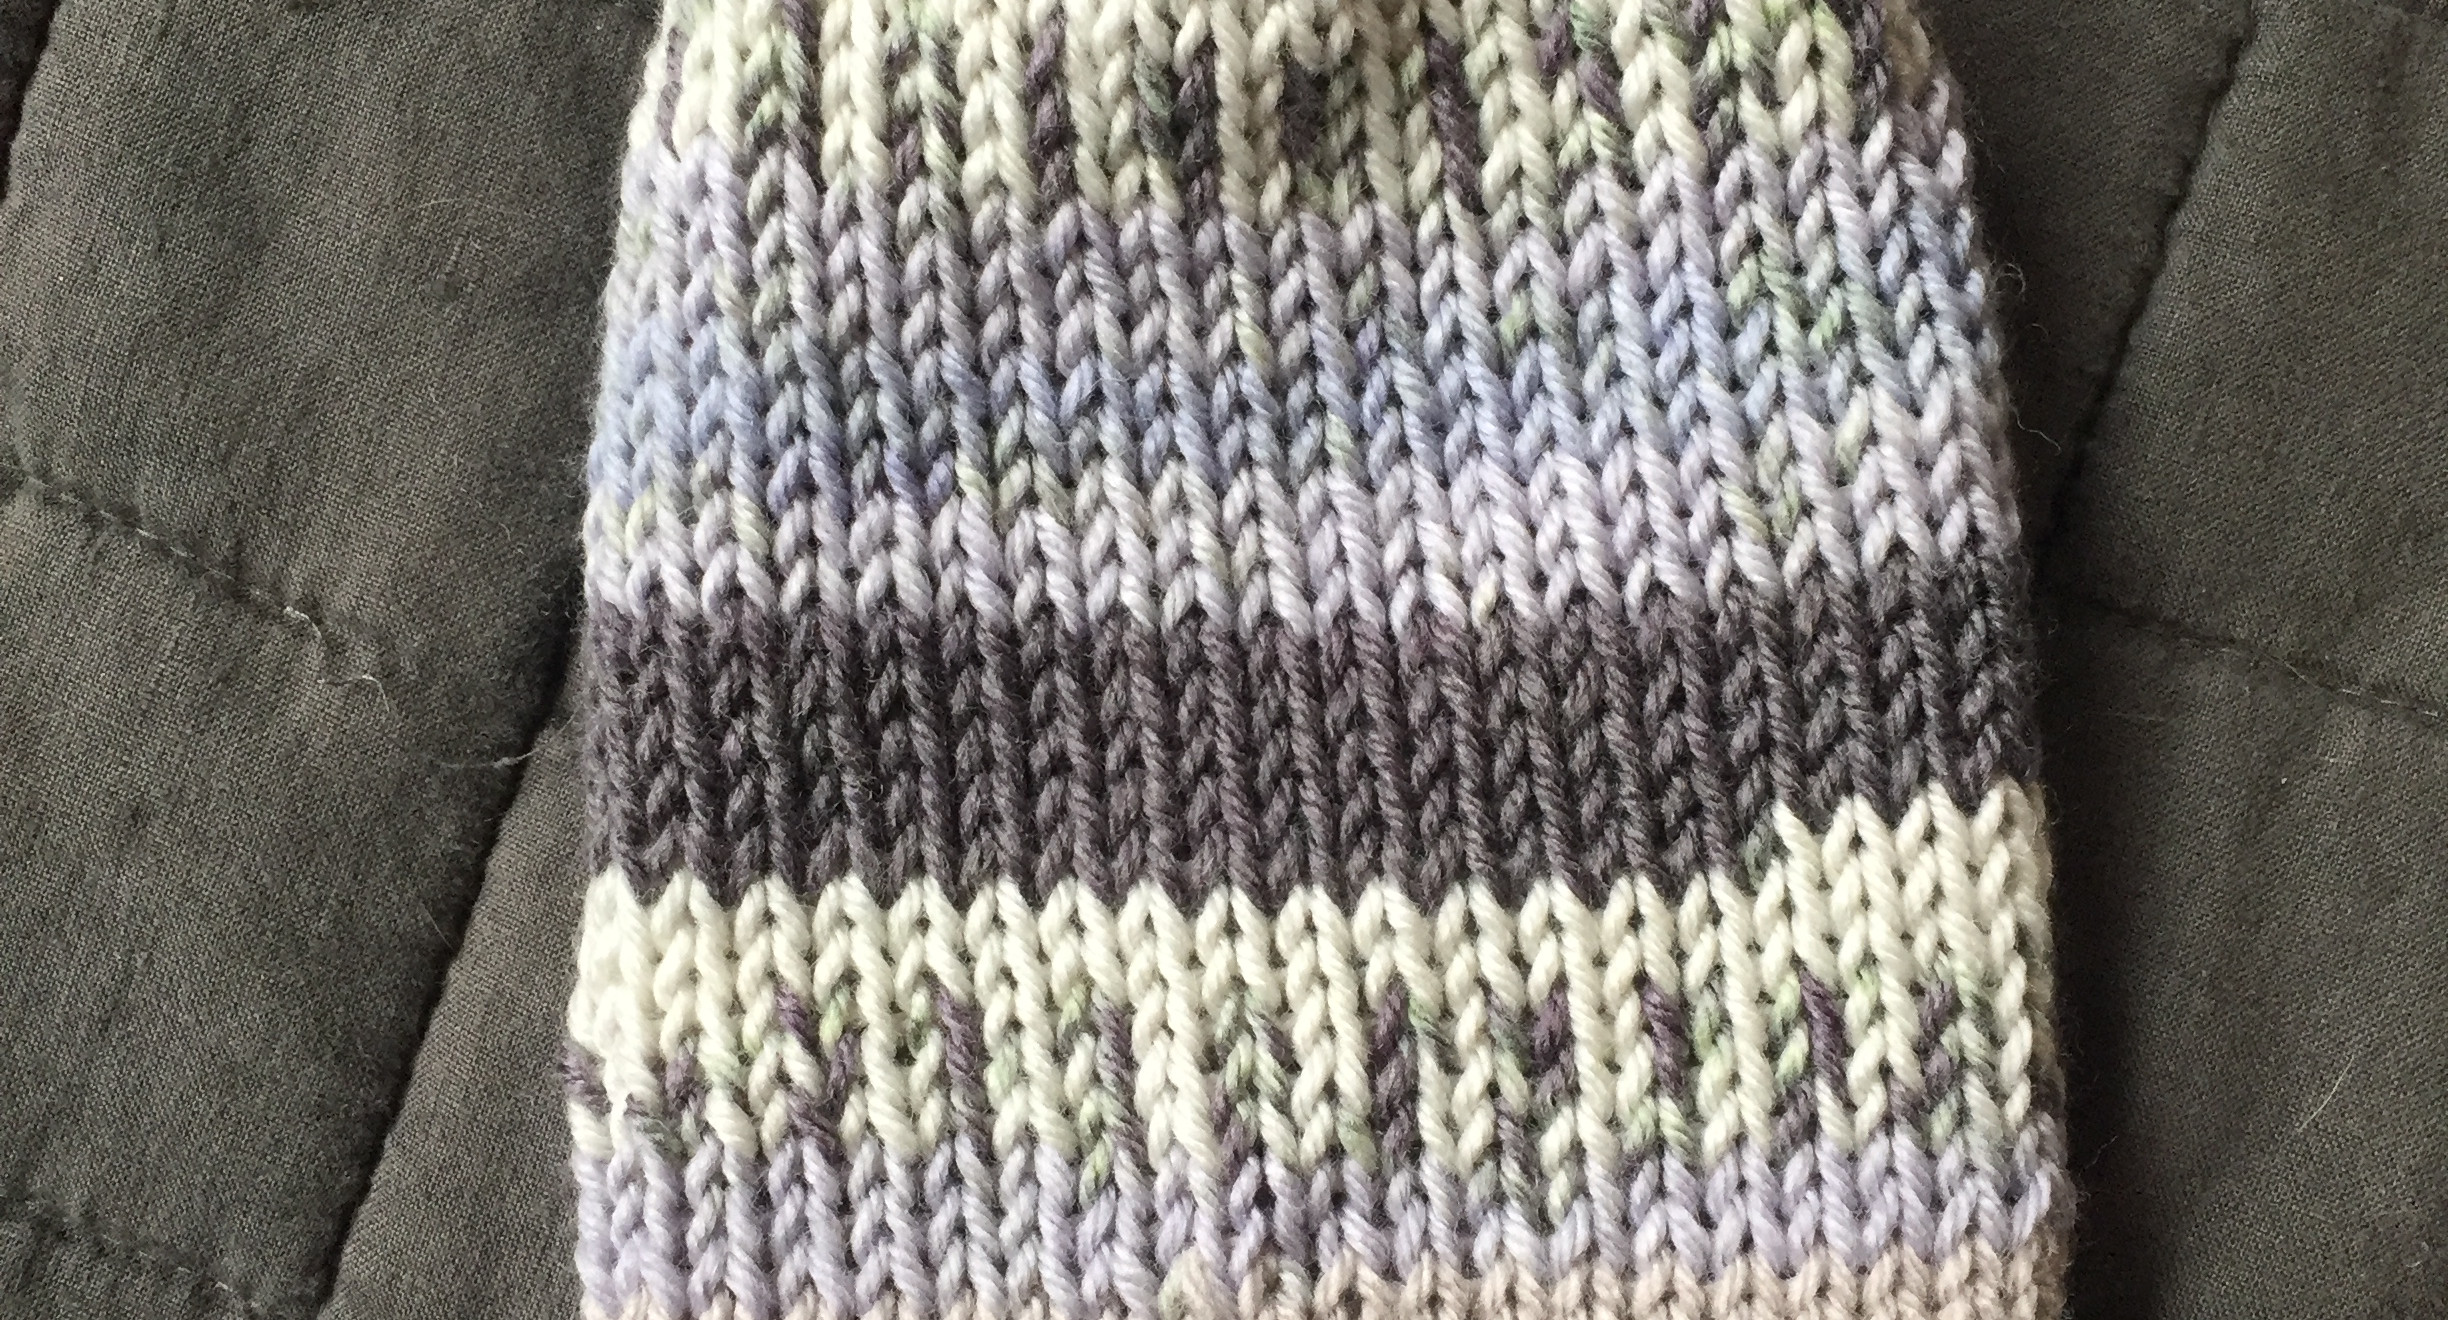 Blue, grey, and cream striped and spotted knit kids' hat